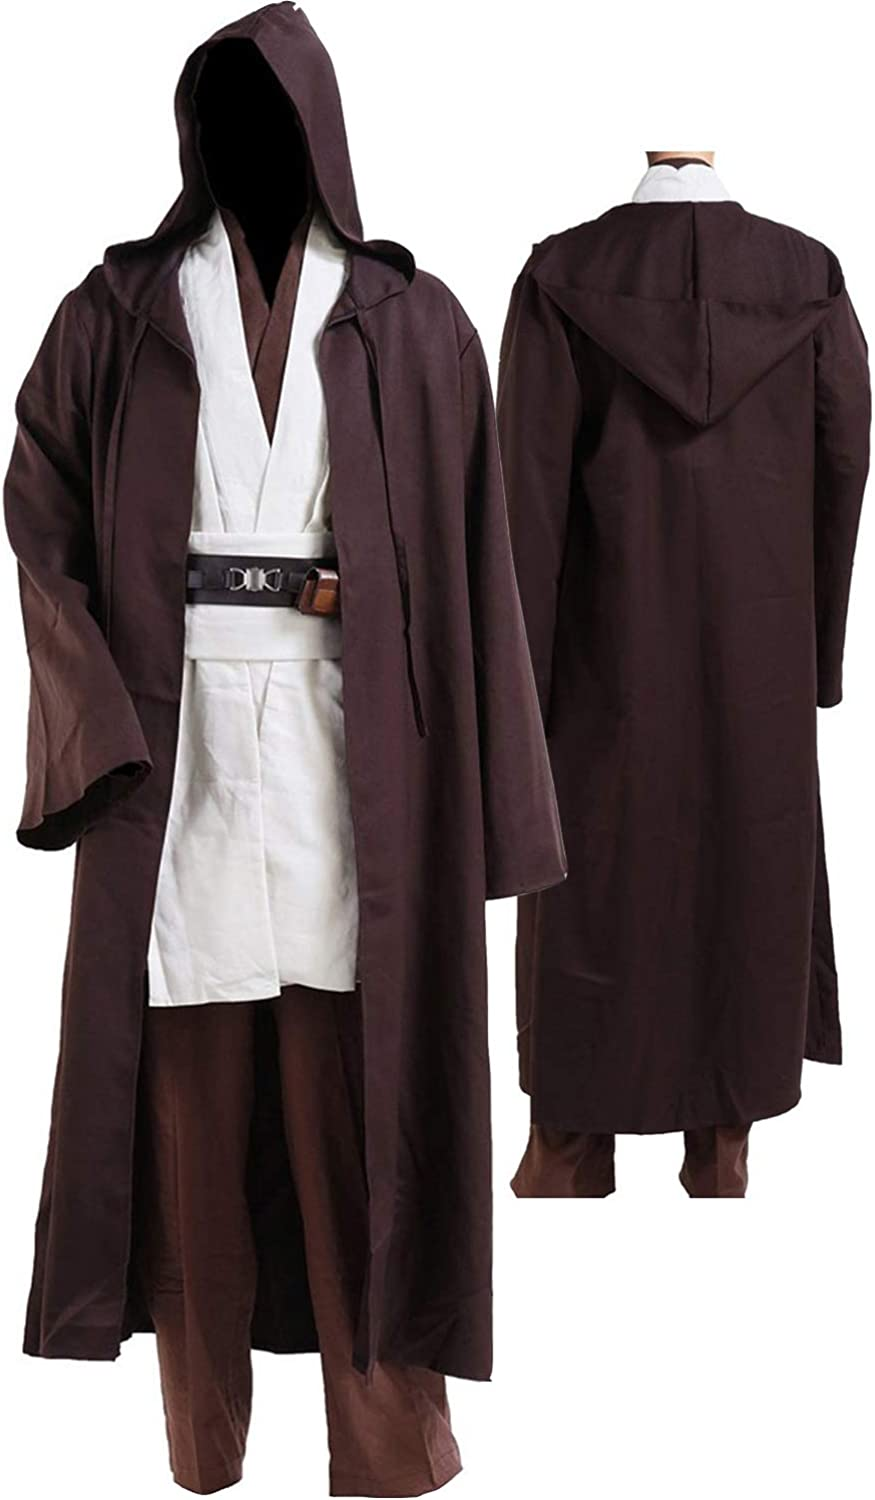 Tunic Costume Mens Tunic Hooded Robe Full Set Halloween Cosplay Costume